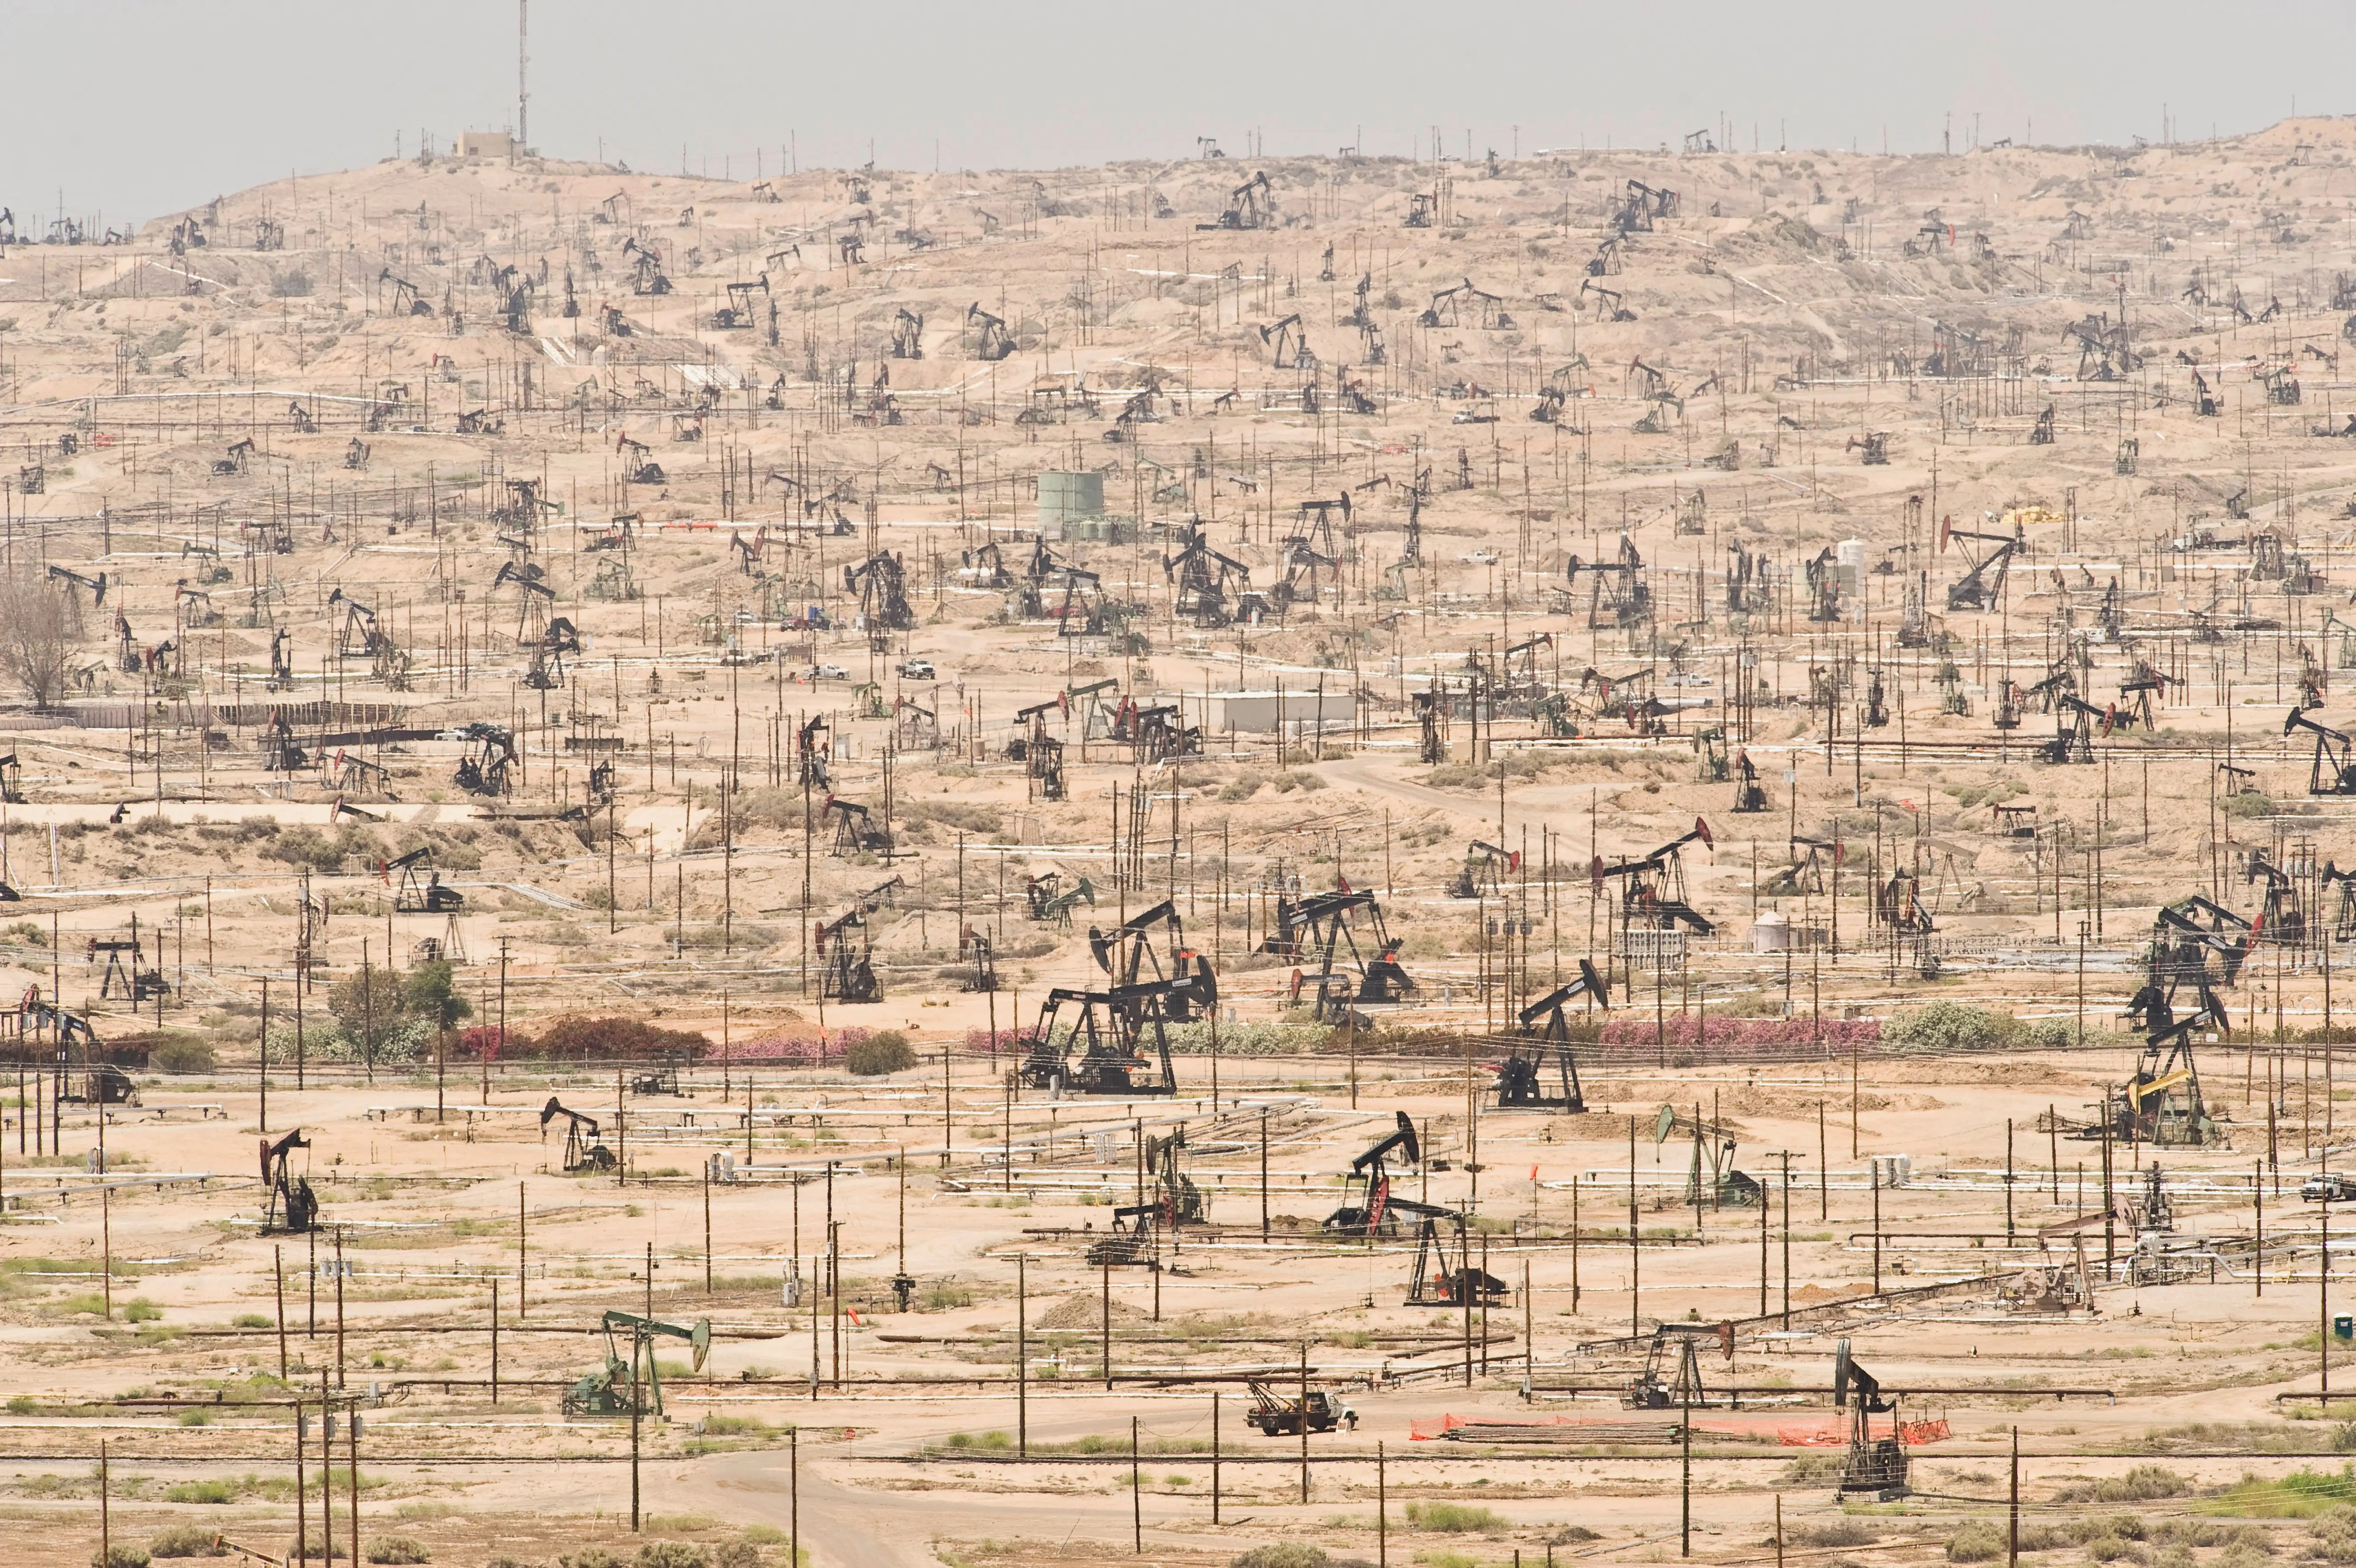 Depleting oil fields, like this one in Kern River Oil Field, California, are yet another sign of humans depleting the Earth's natural resources.